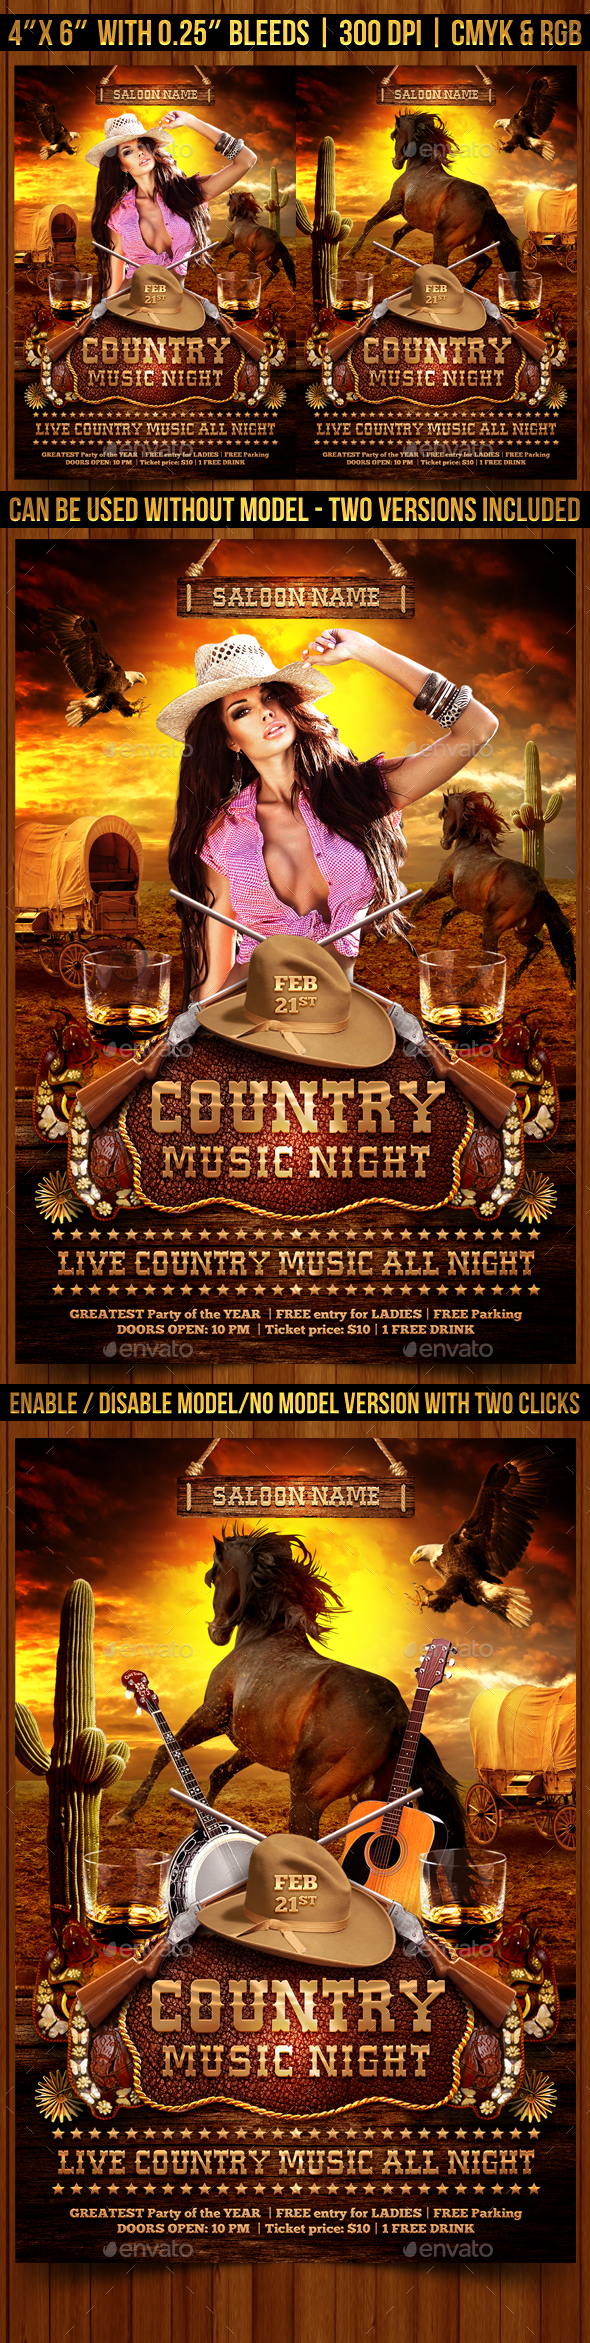 Country Music Night Flyer Template - Clubs & Parties Events